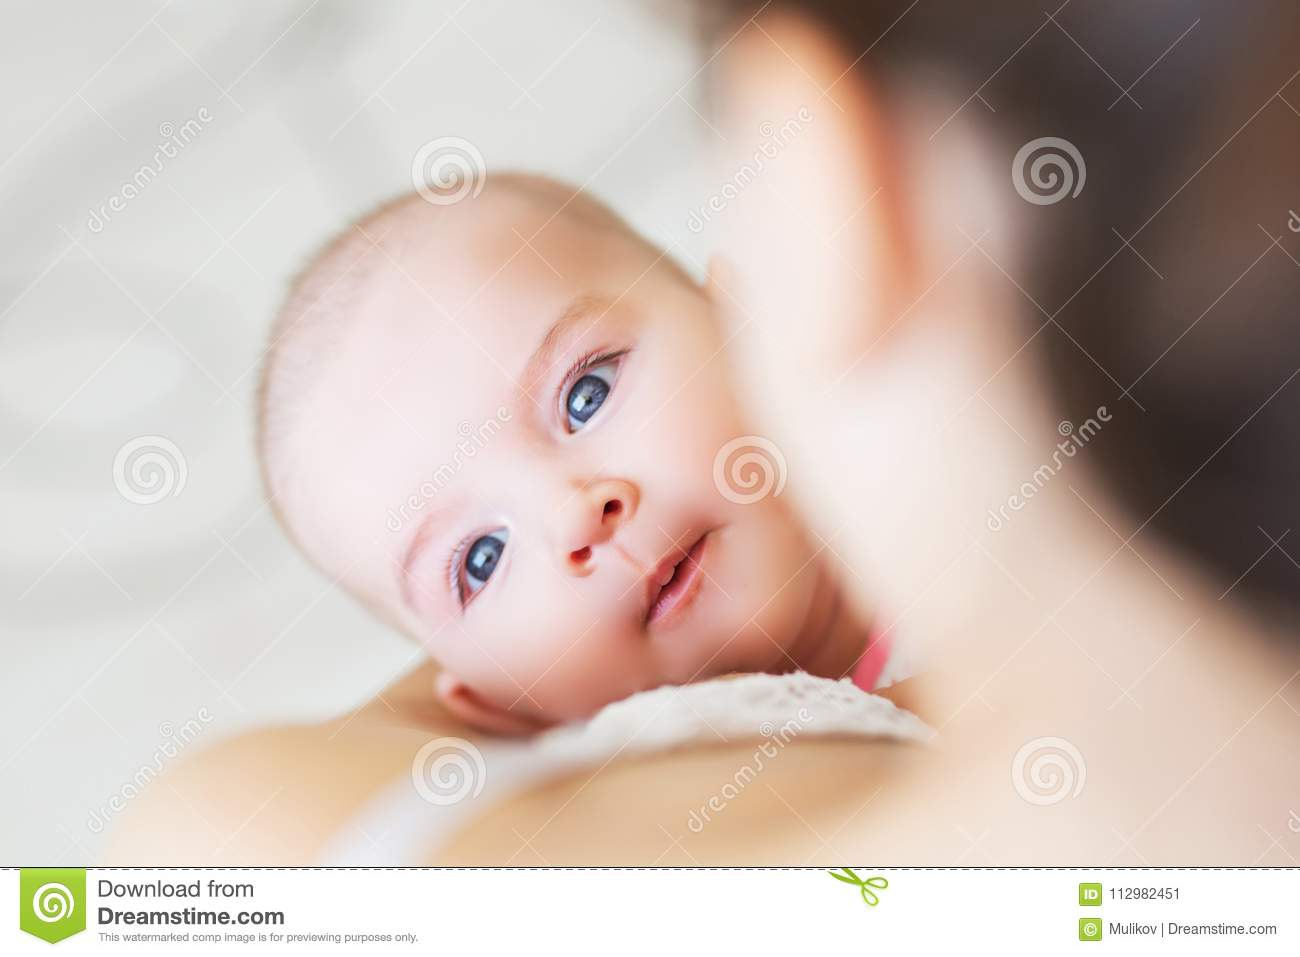 Young mom breast feeding her newborn child. Lactation infant concept. Mother feed her baby son or daughter with breast milk